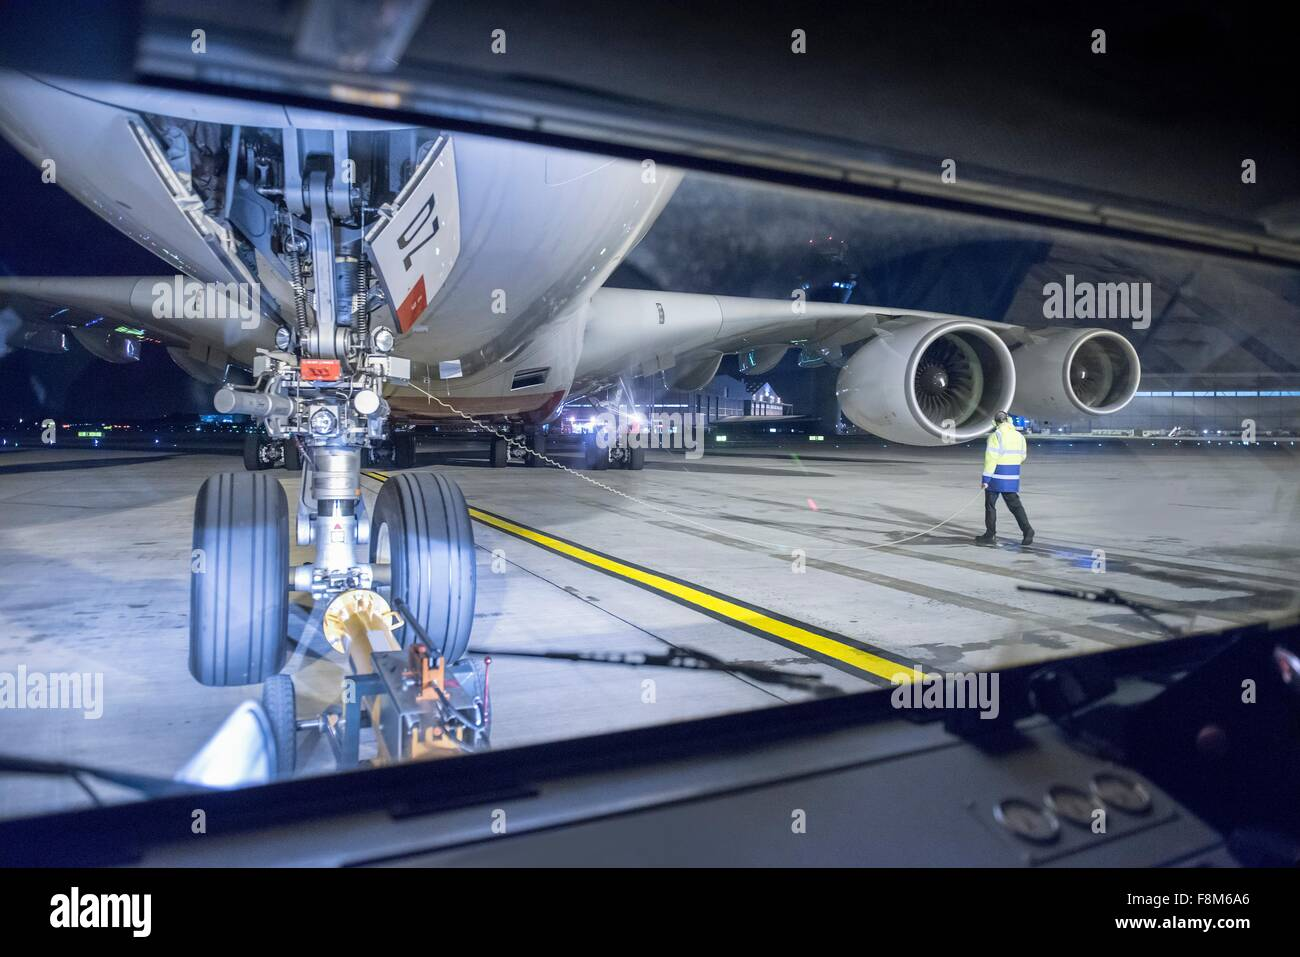 View of A380 aircraft on runway from tug at night - Stock Image